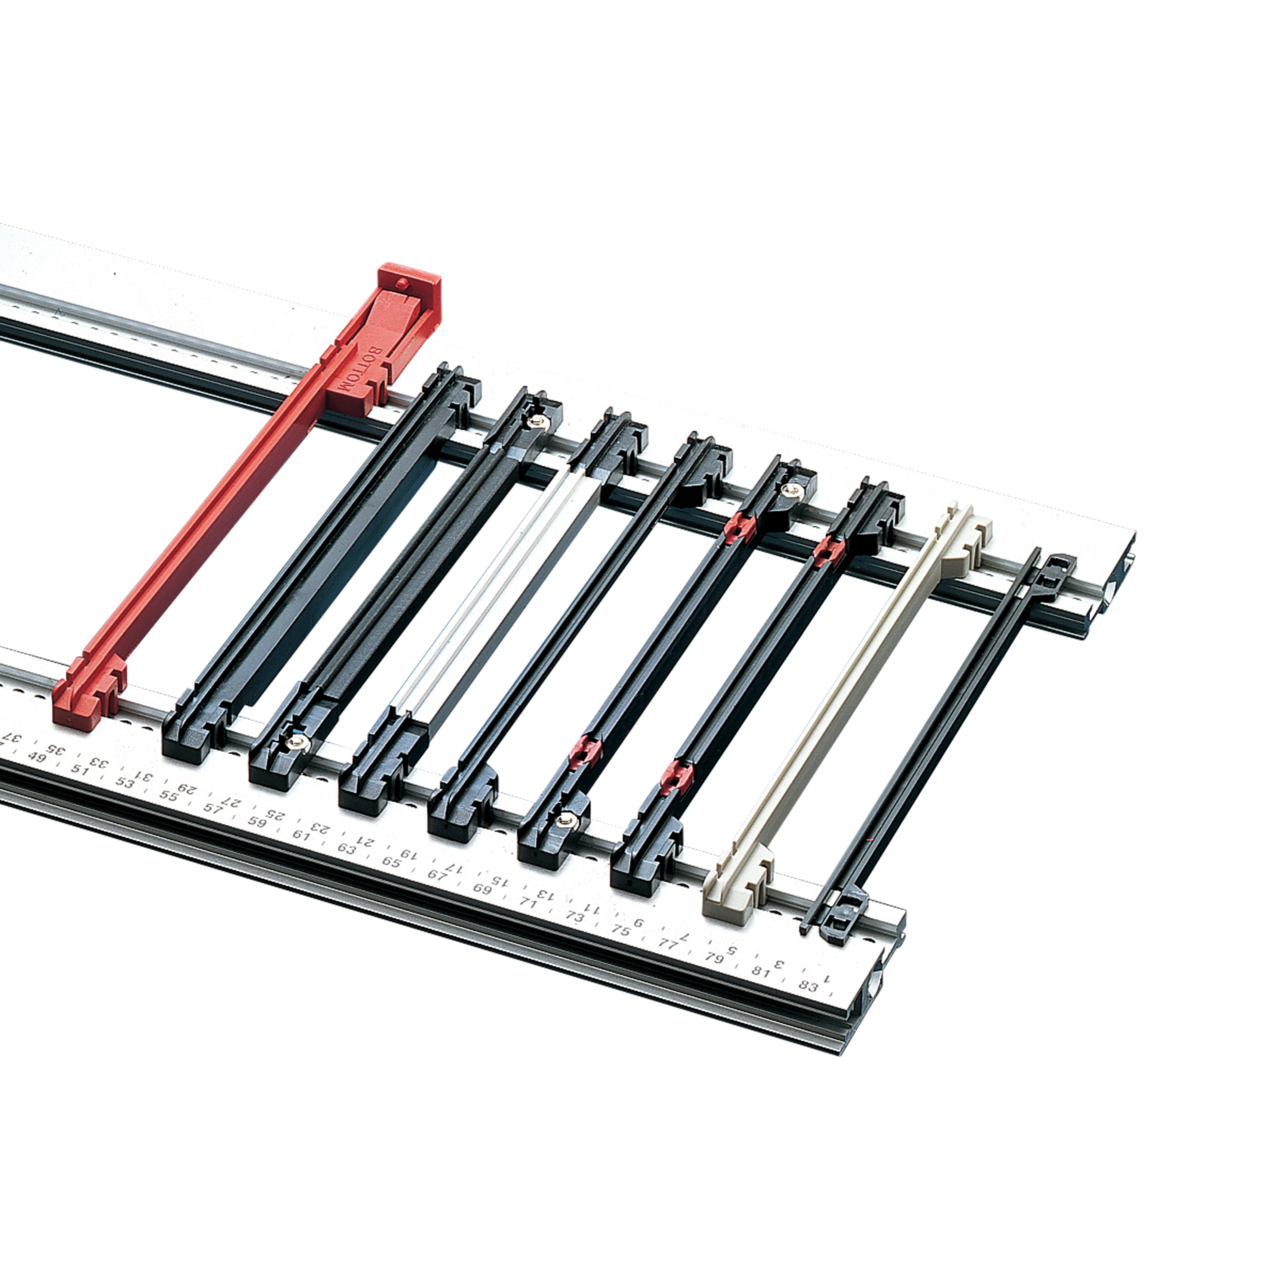 Image for Inpac guide rails from Schroff - Asia Pacific